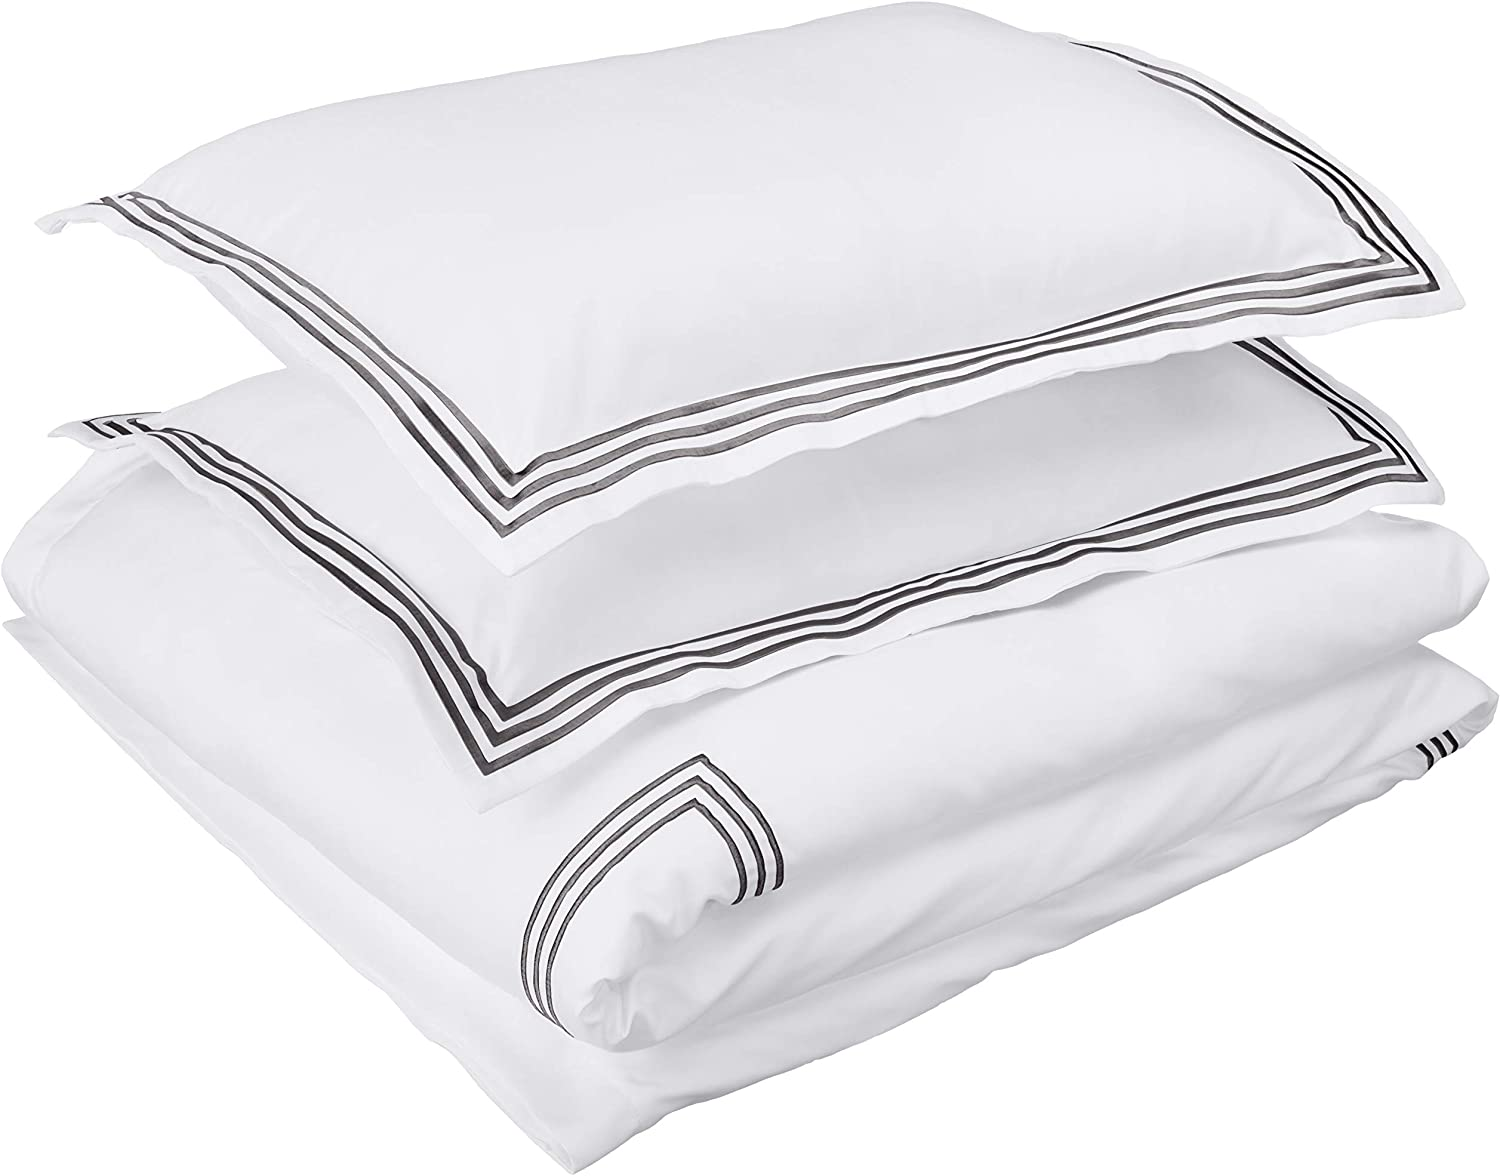 AmazonBasics Embroidered Hotel Stitch Duvet Cover Set - Premium, Soft, Easy-Wash Microfiber - Full/Queen, White with Dark Grey Embroidery